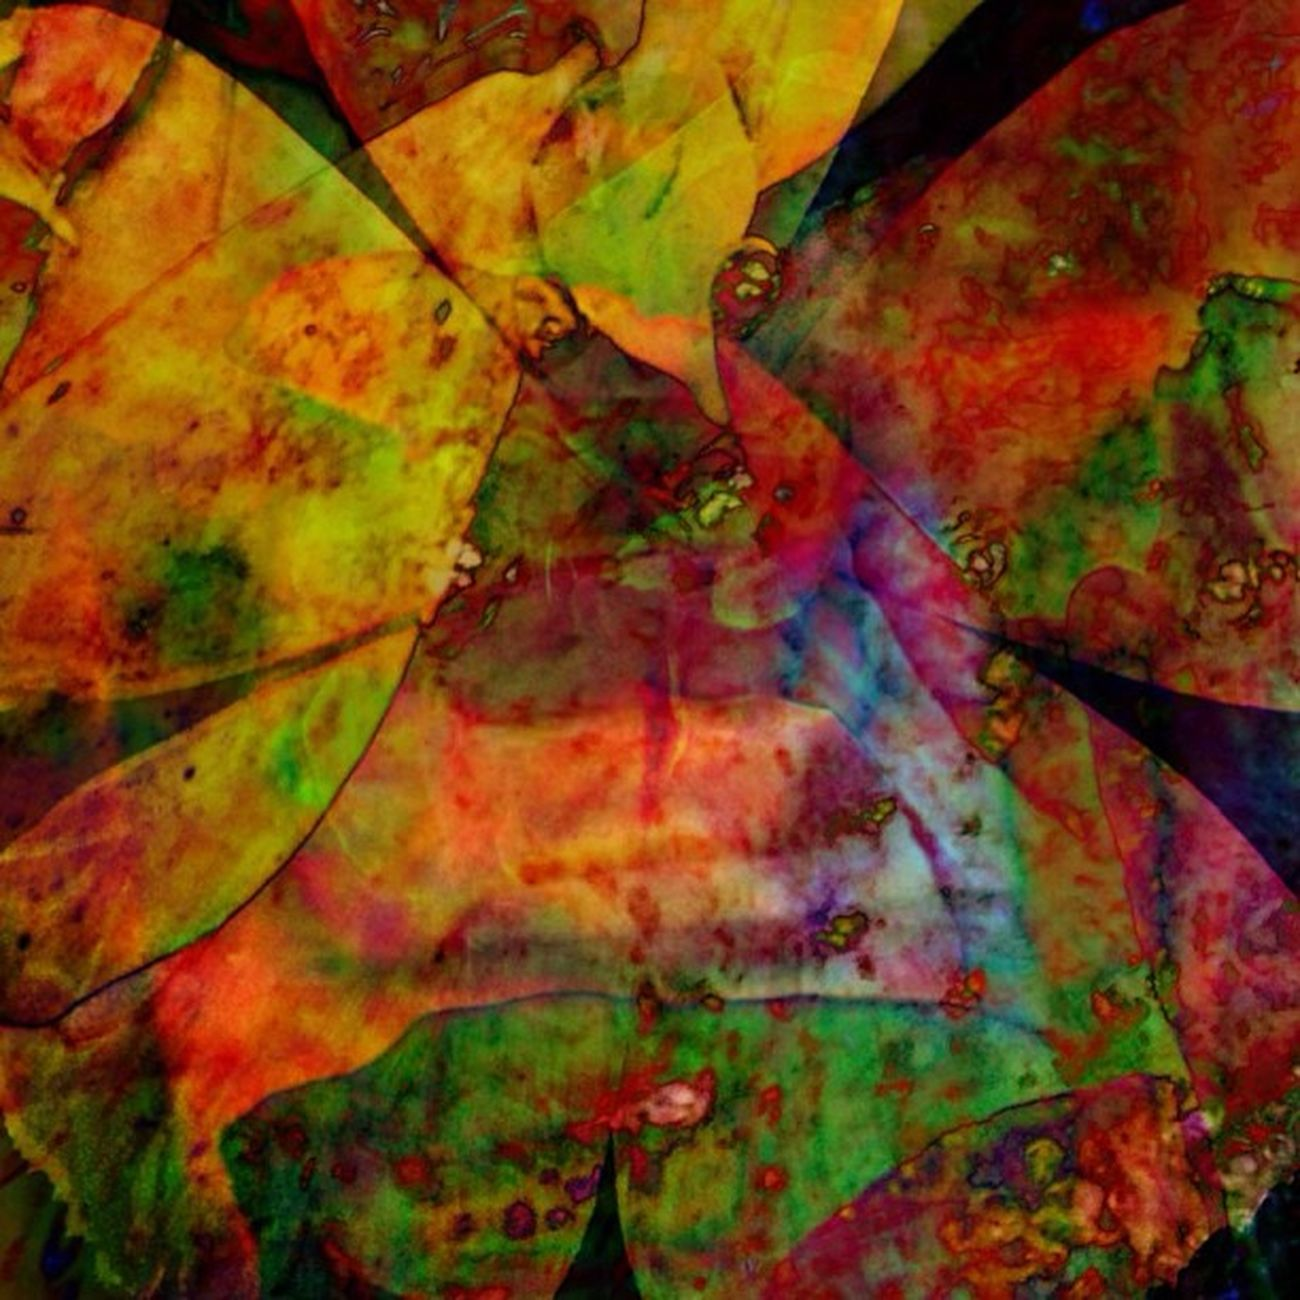 The Colors of Joy & Gratitude (3 of 3) Dedicated to all those who follow and shower me with loving sentiments. You make my days brighter Ig_captures Happycolortrip Abstracto Coloronroids All_shots Dhexpose StayABSTRACT Ace_ Abstractart Deadlydivas Gang_family Ig_one Editjunky Icatching Mobileartistry Femme_elite Instauno Weareinheaven Igsg You_nique_edits Bd Mi55flowerz Abstracters_anonymous Edit_fever Abstract_buff Abstractobsession Instaabstract